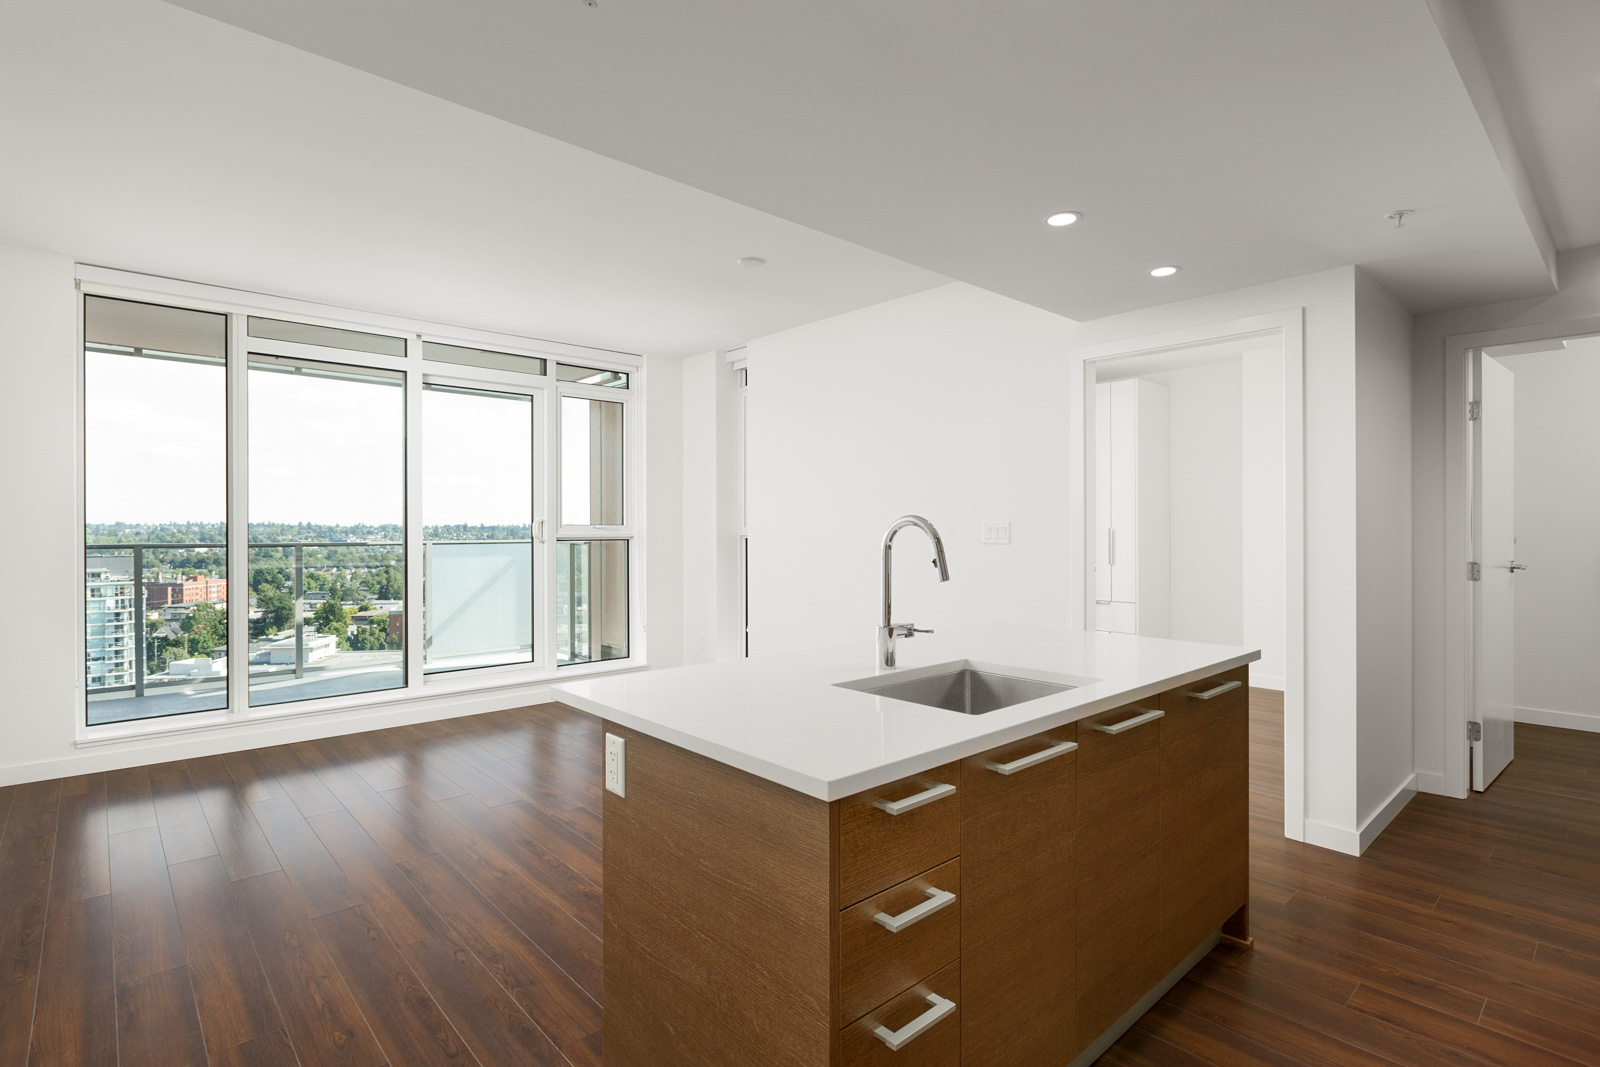 Kitchen island overlooking dining area with access to views of Vancouver's Mount Pleasant.